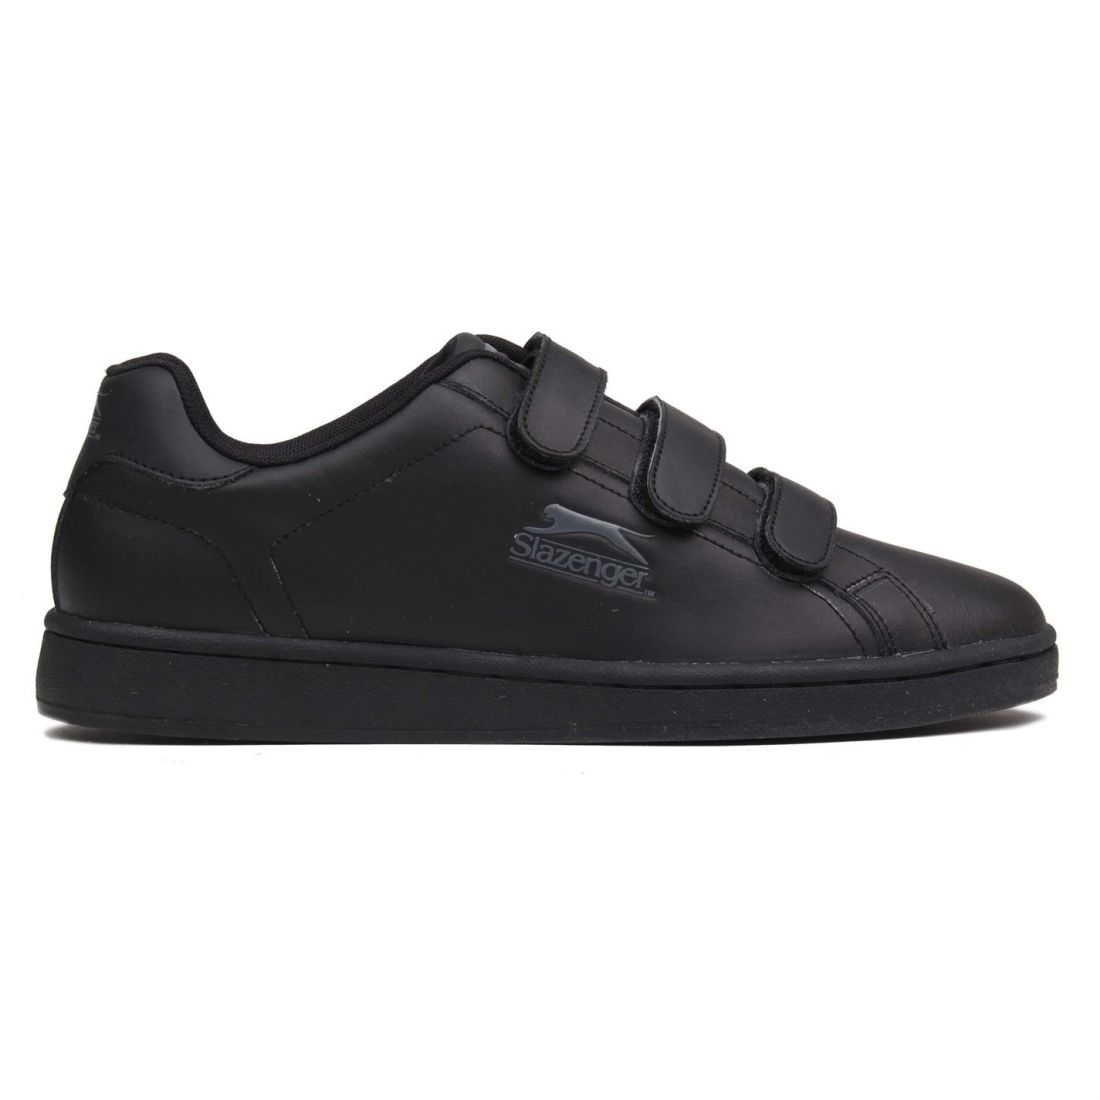 68016bee1 Details about Slazenger Mens Ash Vel Fashion Hook And Loop Casual Shoes  Trainers Footwear